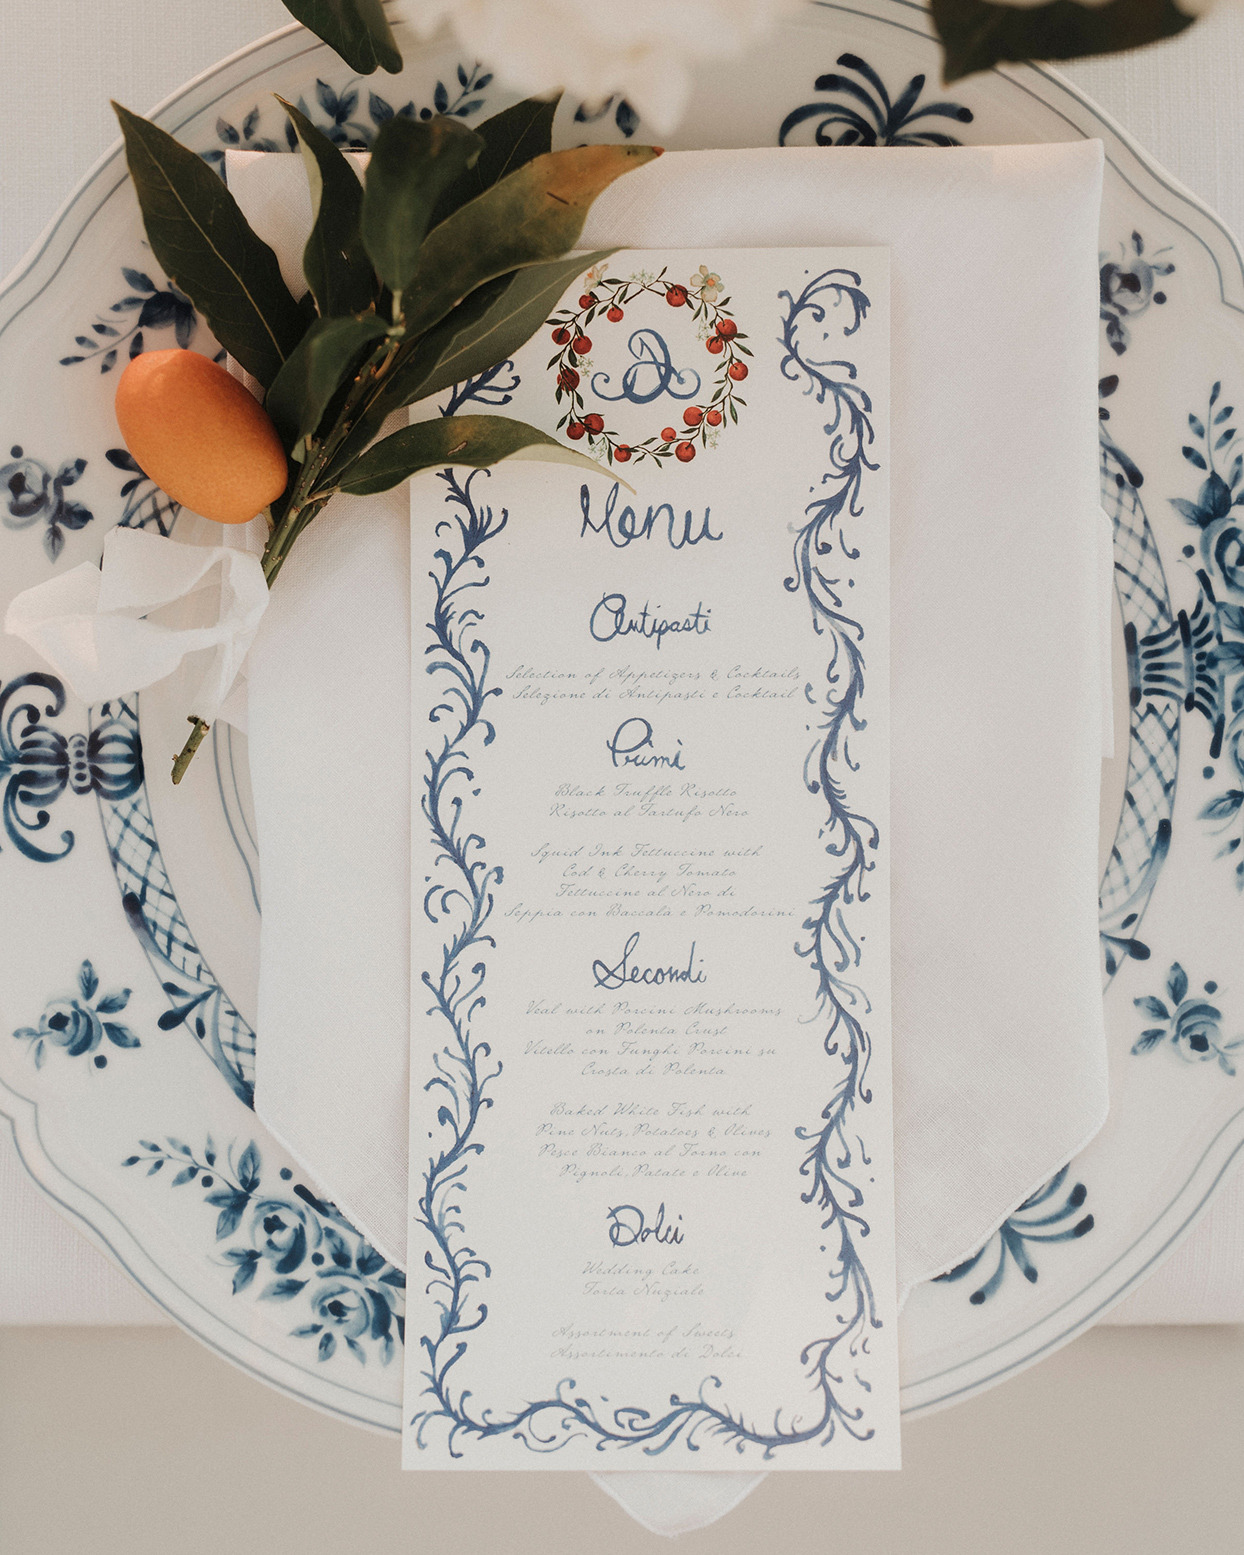 jaclyn antonio watercolor menu place setting